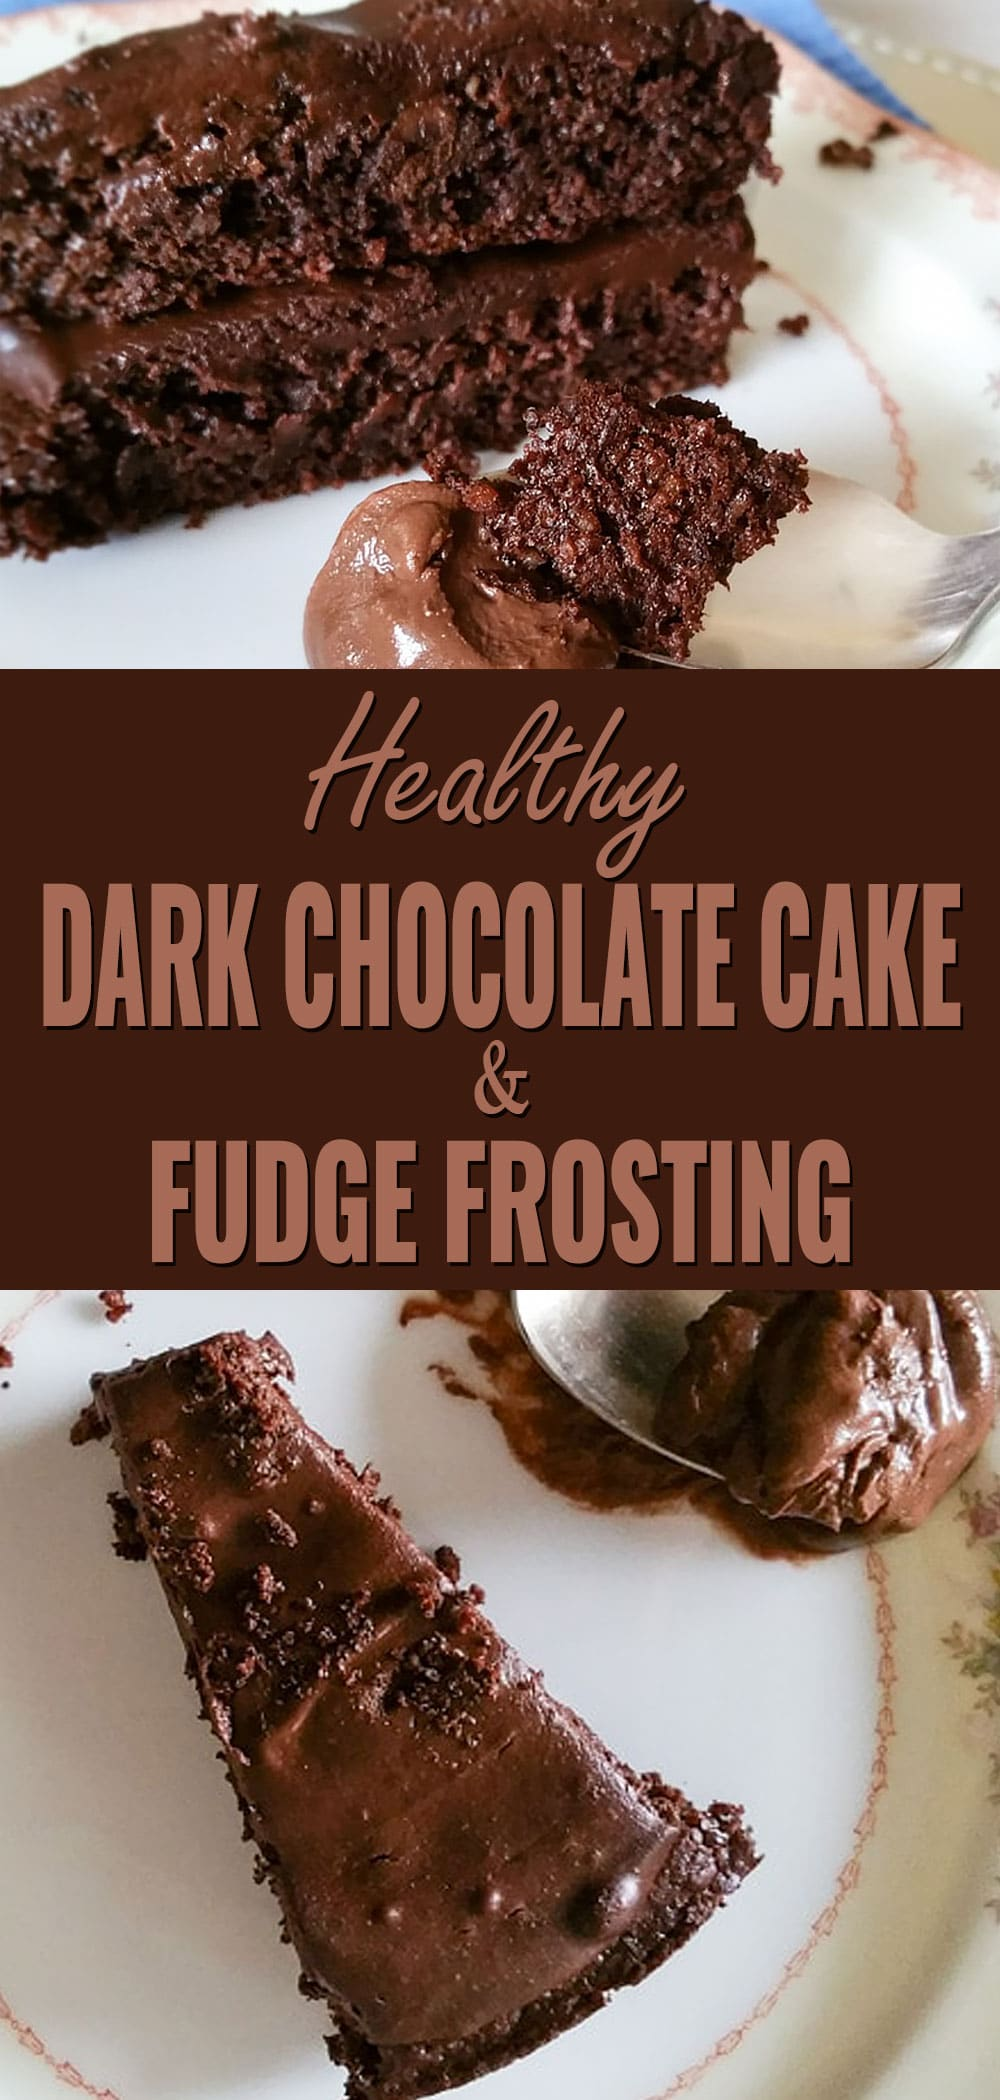 Gluten Free Double Chocolate Coffee Fudge Cake